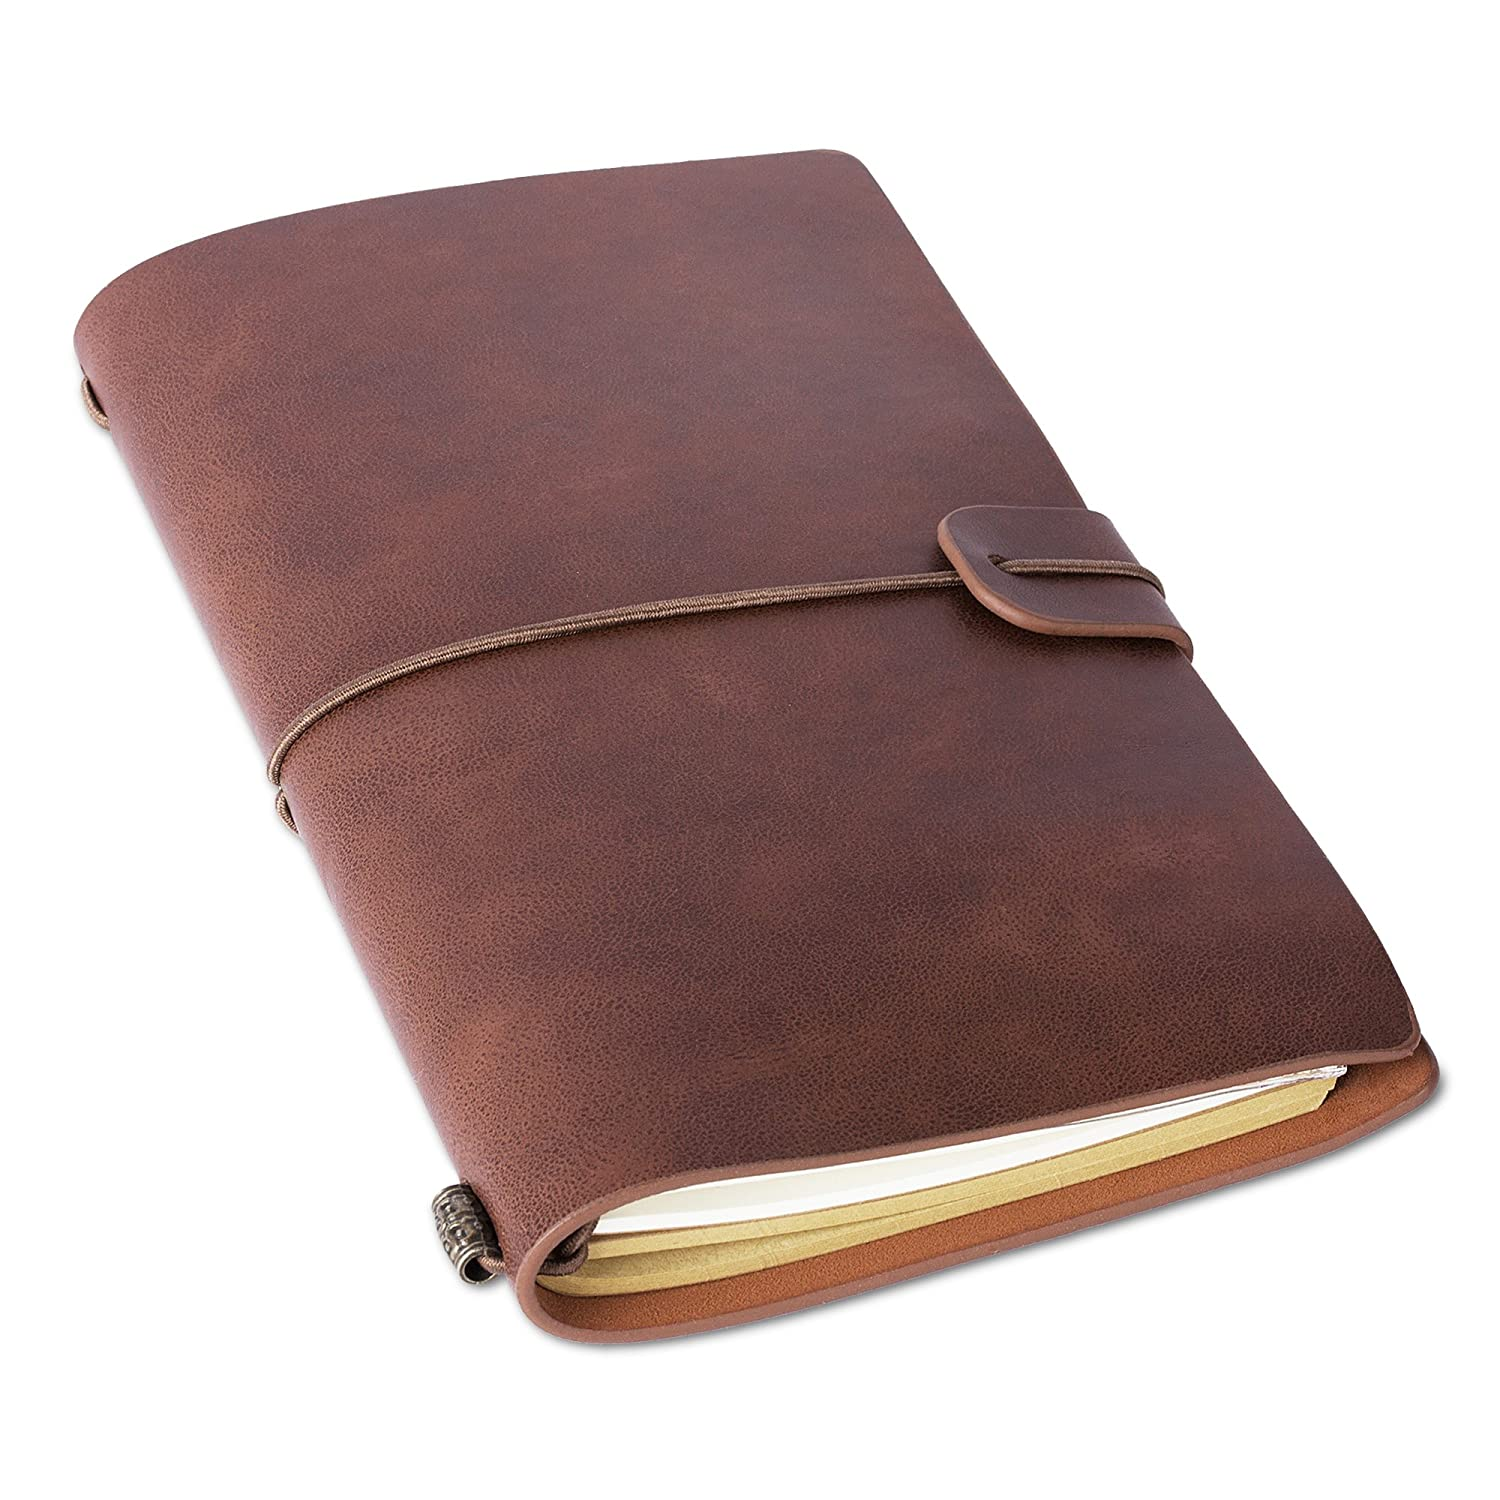 Refillable Leather Traveler's Journal – Insert Booklets and Card Holder – Perfect Field Notebook